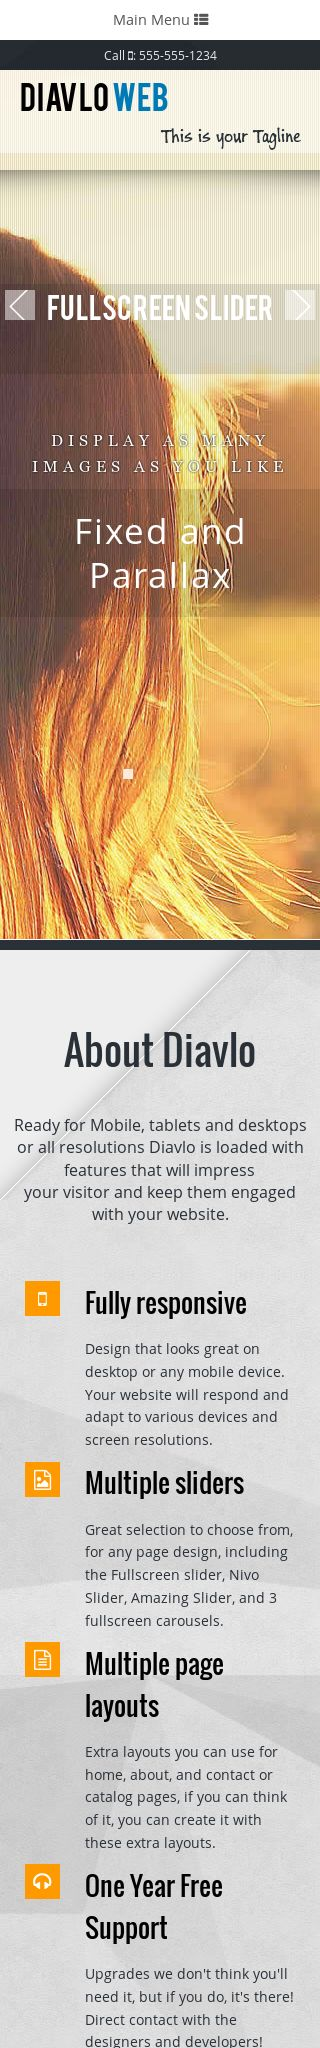 Mobile: Multi-purpose Wordpress Theme